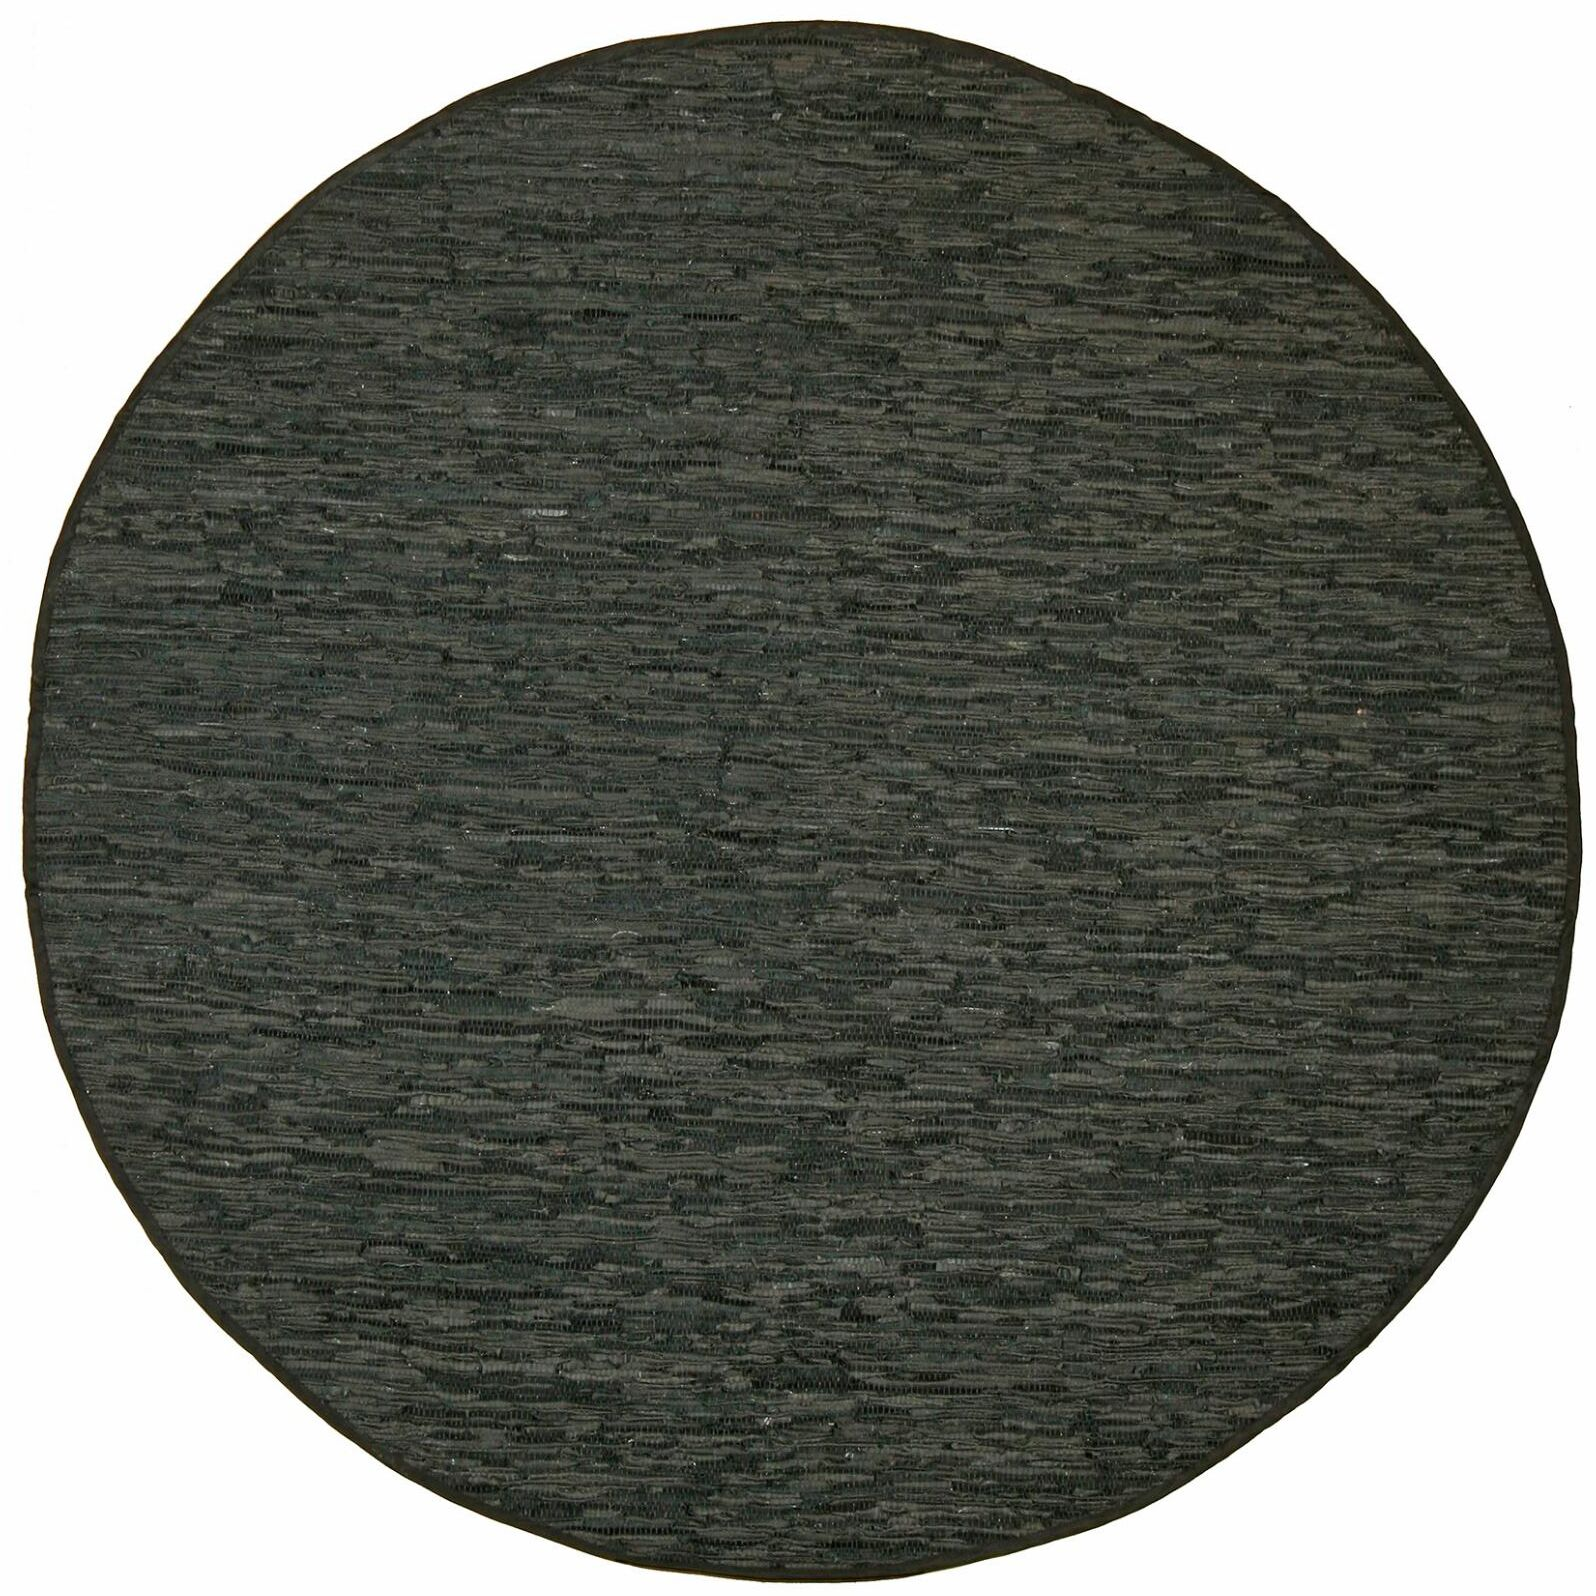 Sandford Leather Chindi Green Area Rug Rug Size: Round 6'